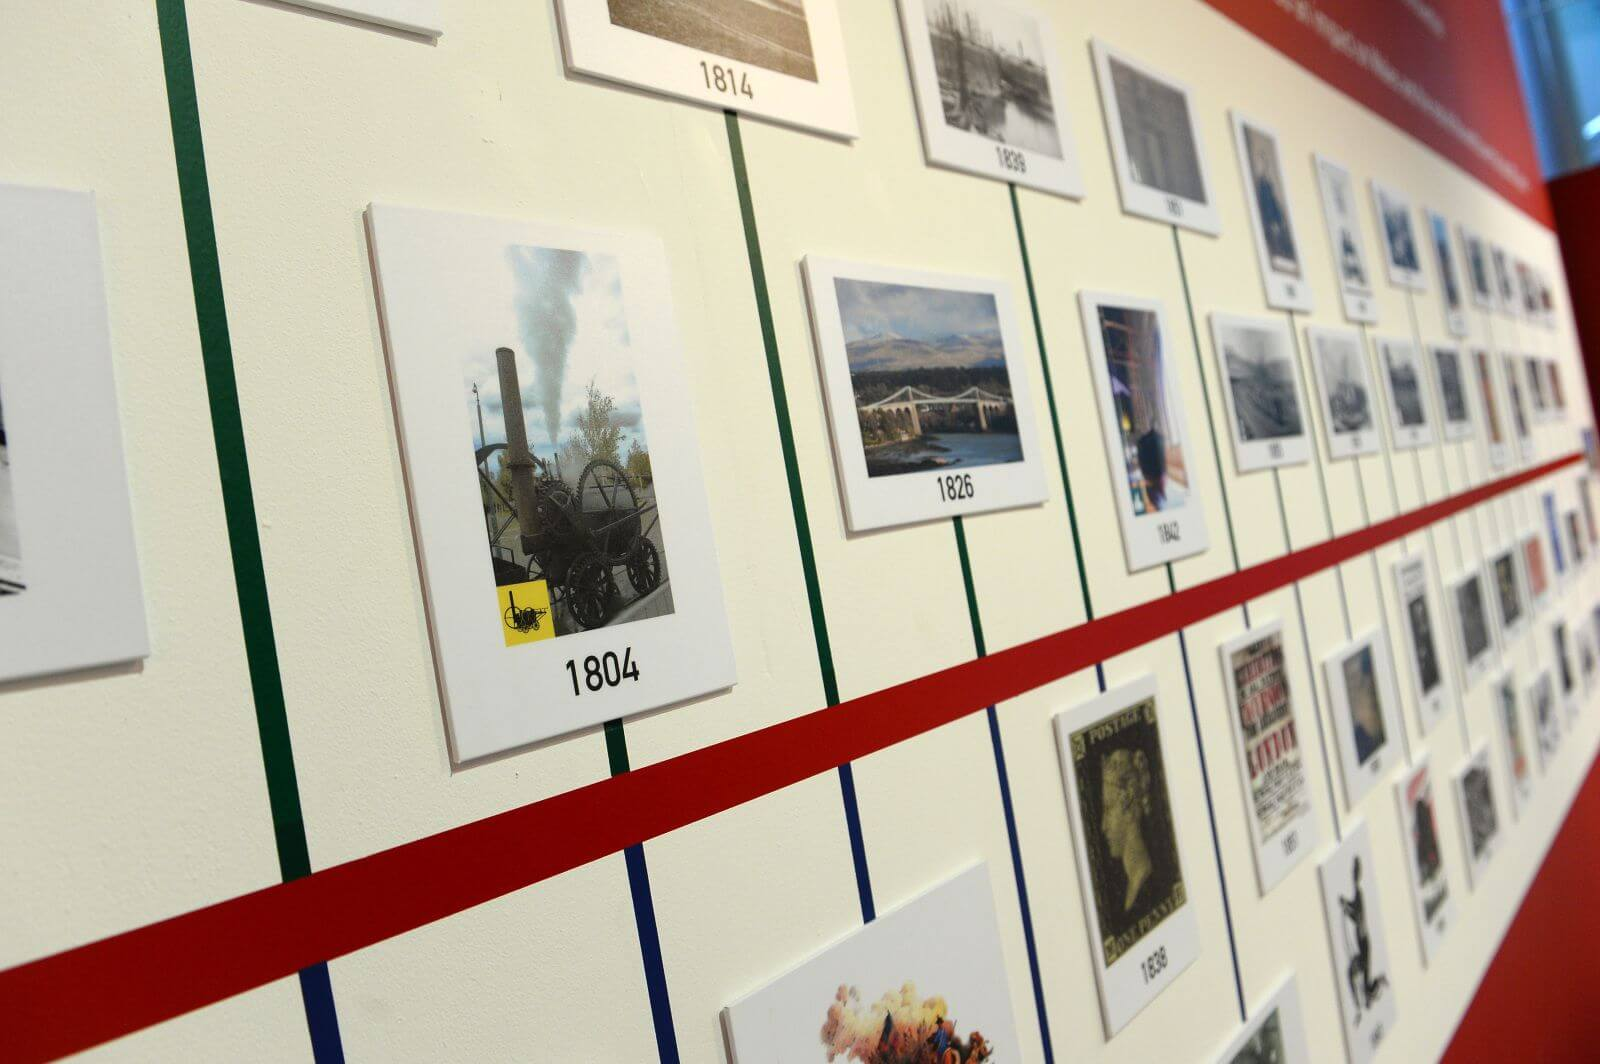 A timeline of history on the wall at the National Waterfront Museum.